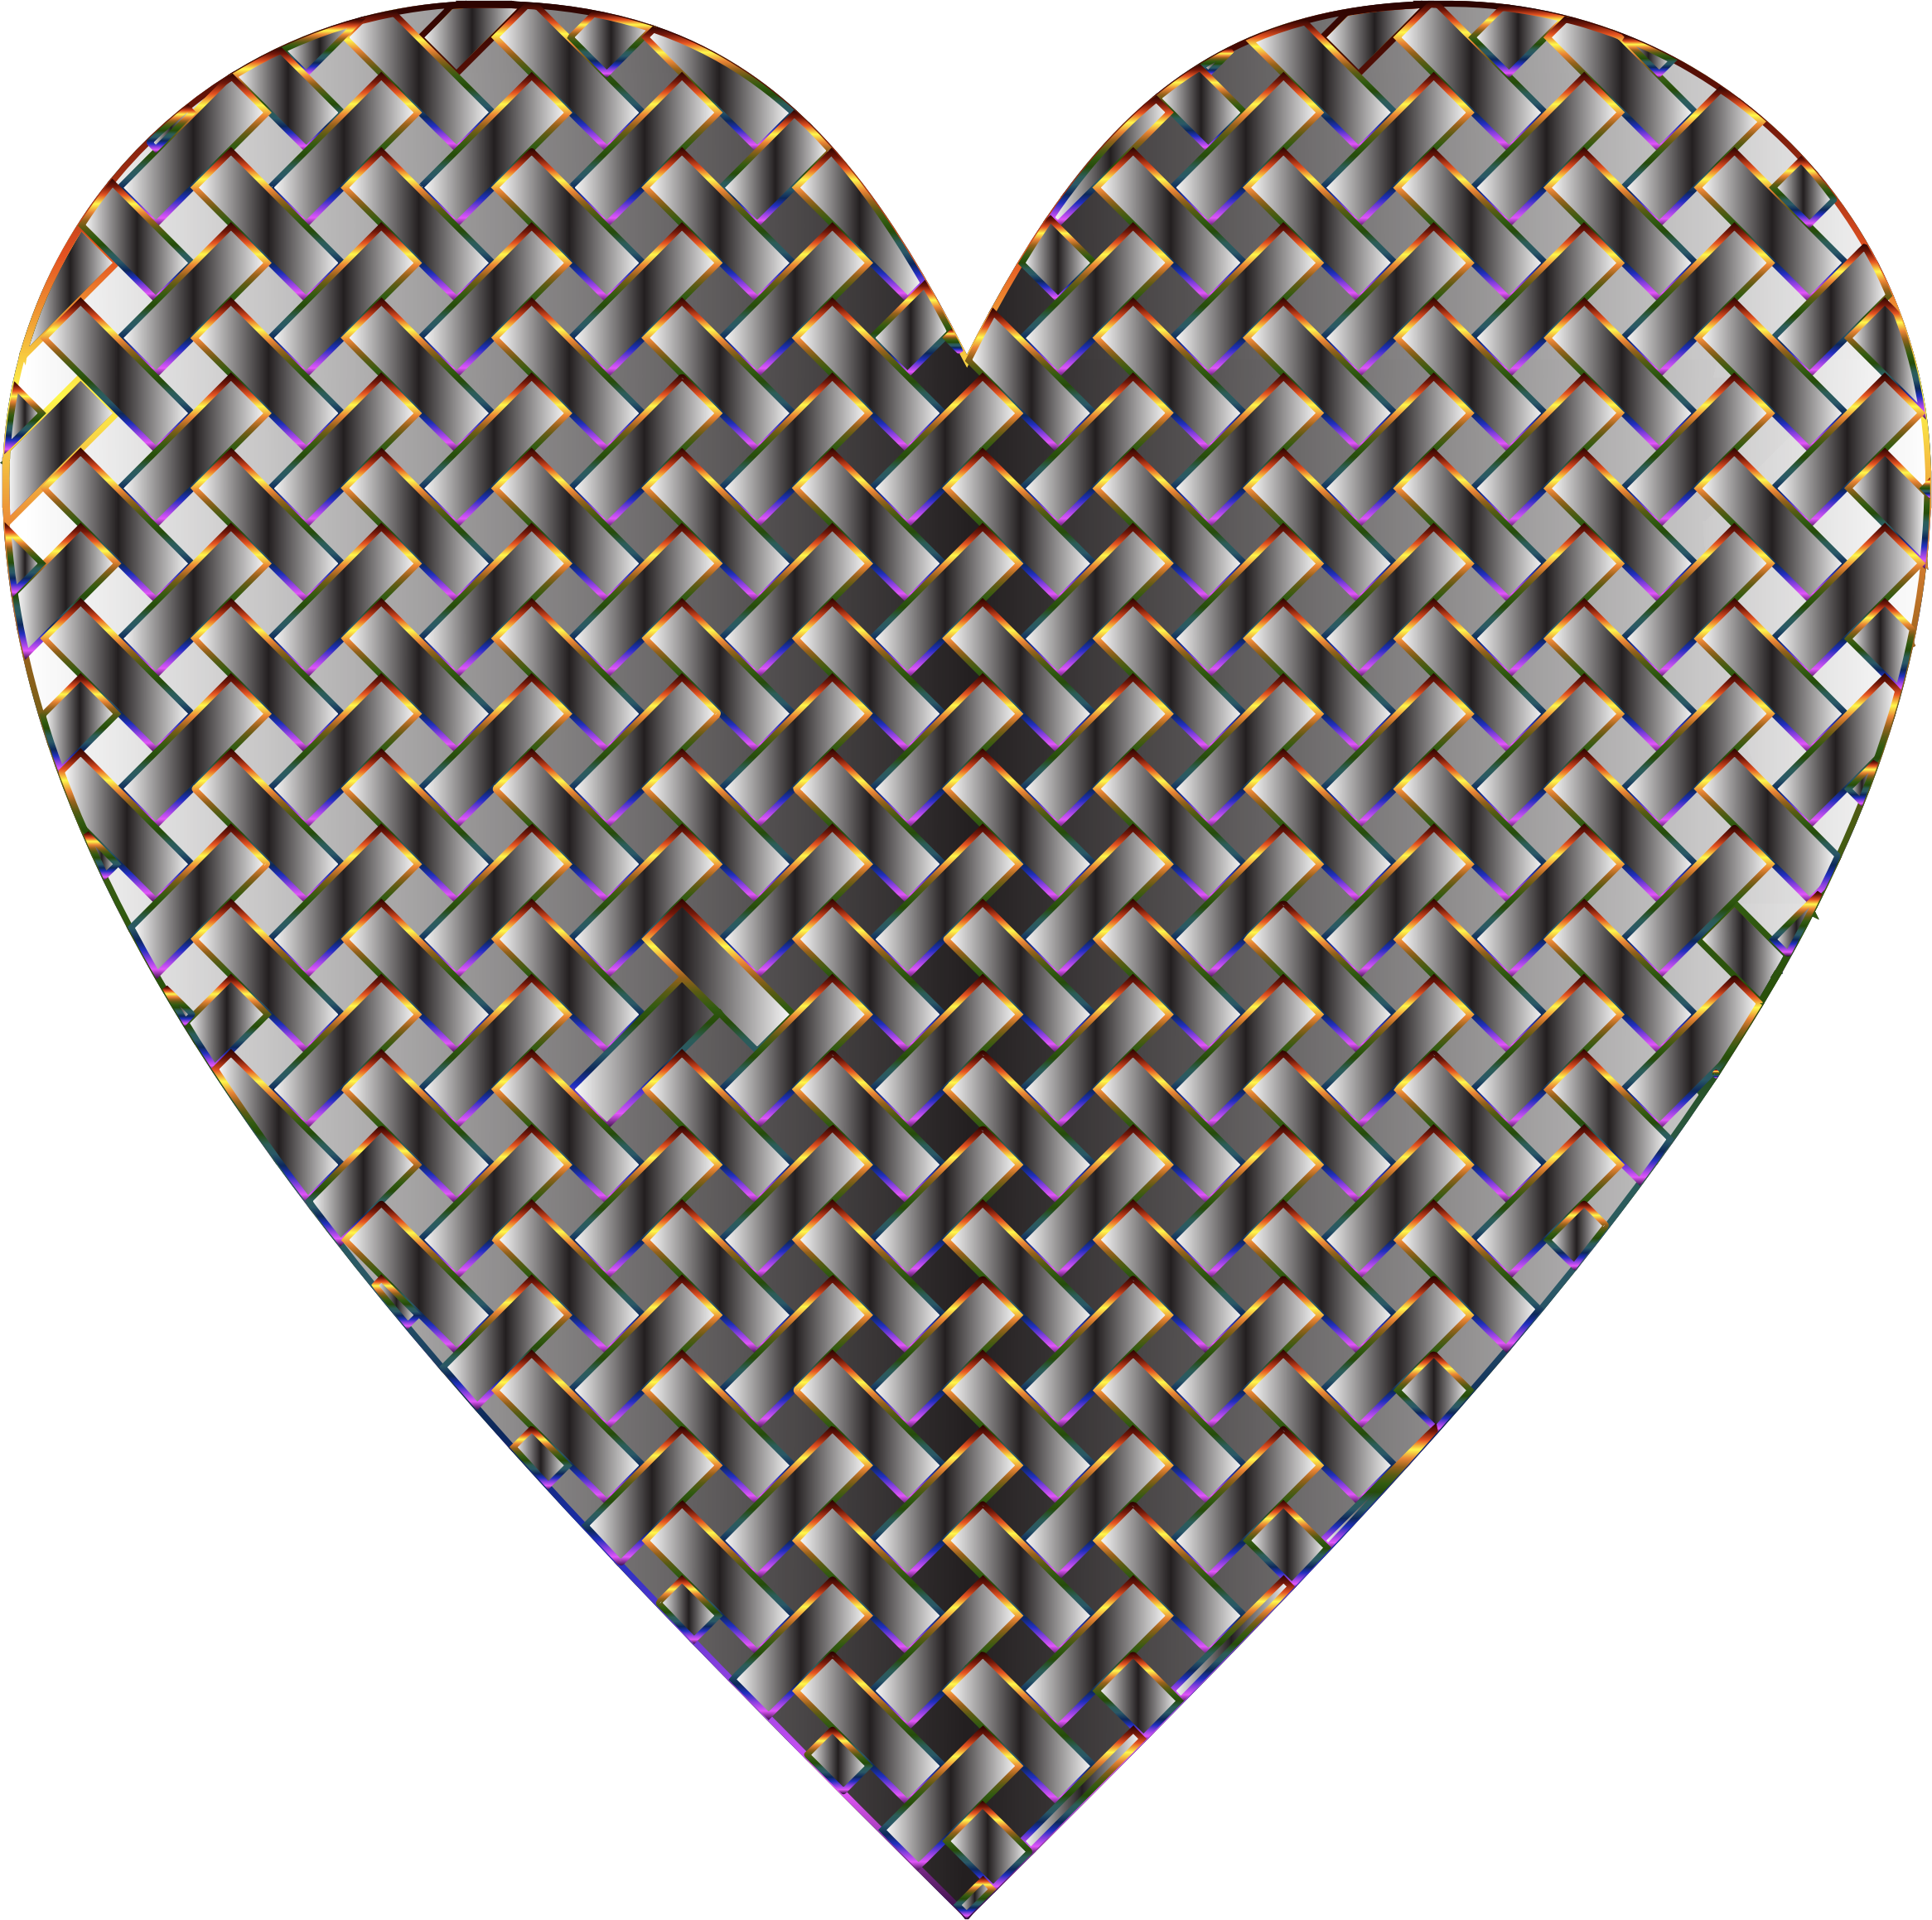 Colorful Heart Lattice Weave 11 by GDJ